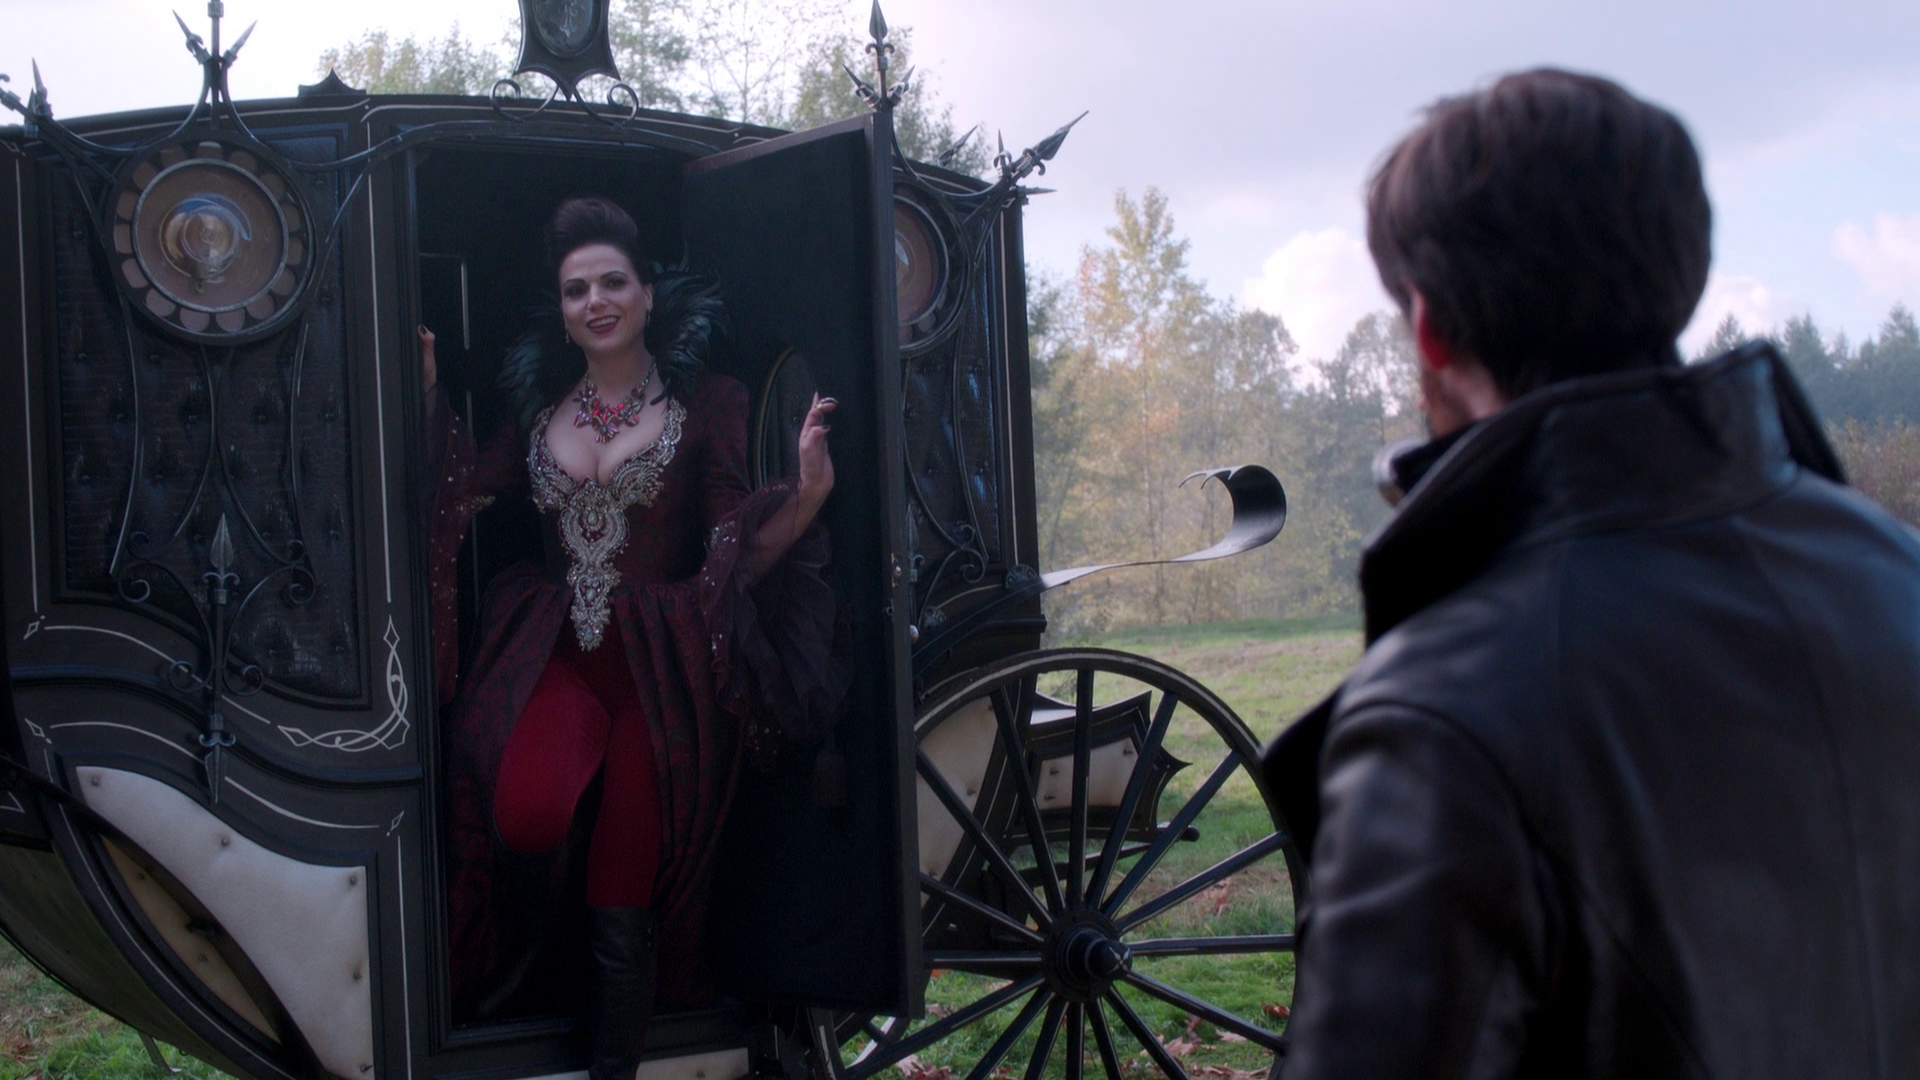 Evil Queen's Carriages